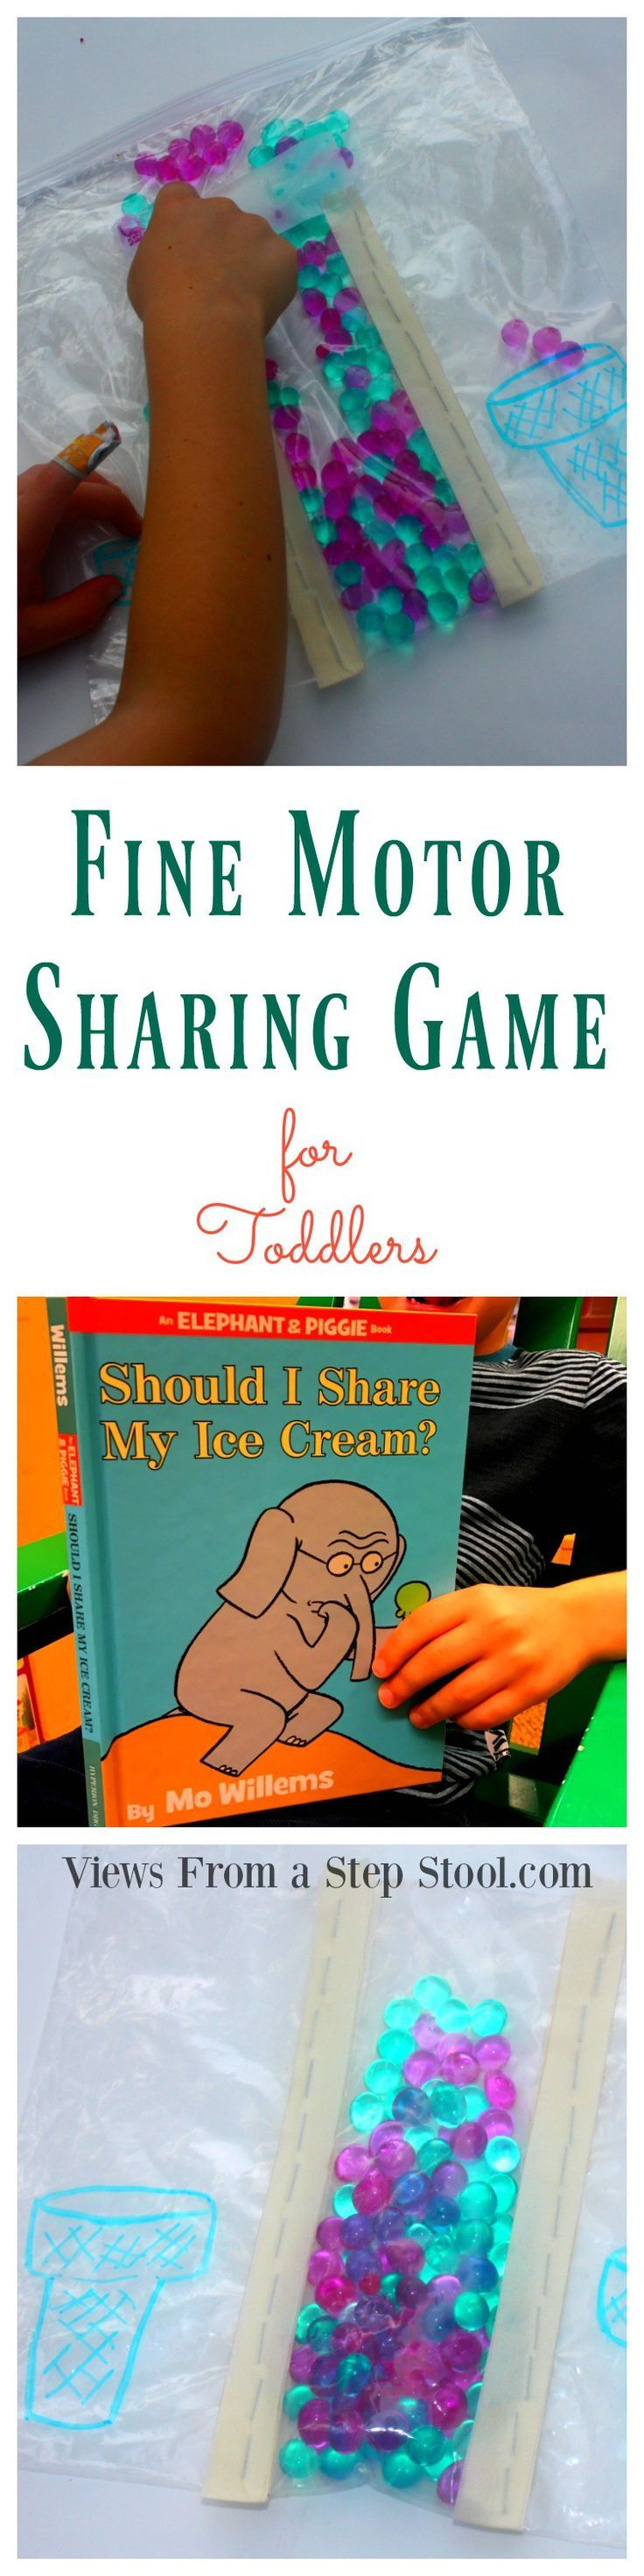 This fine motor sharing game for toddlers practices social skills through play, sharing